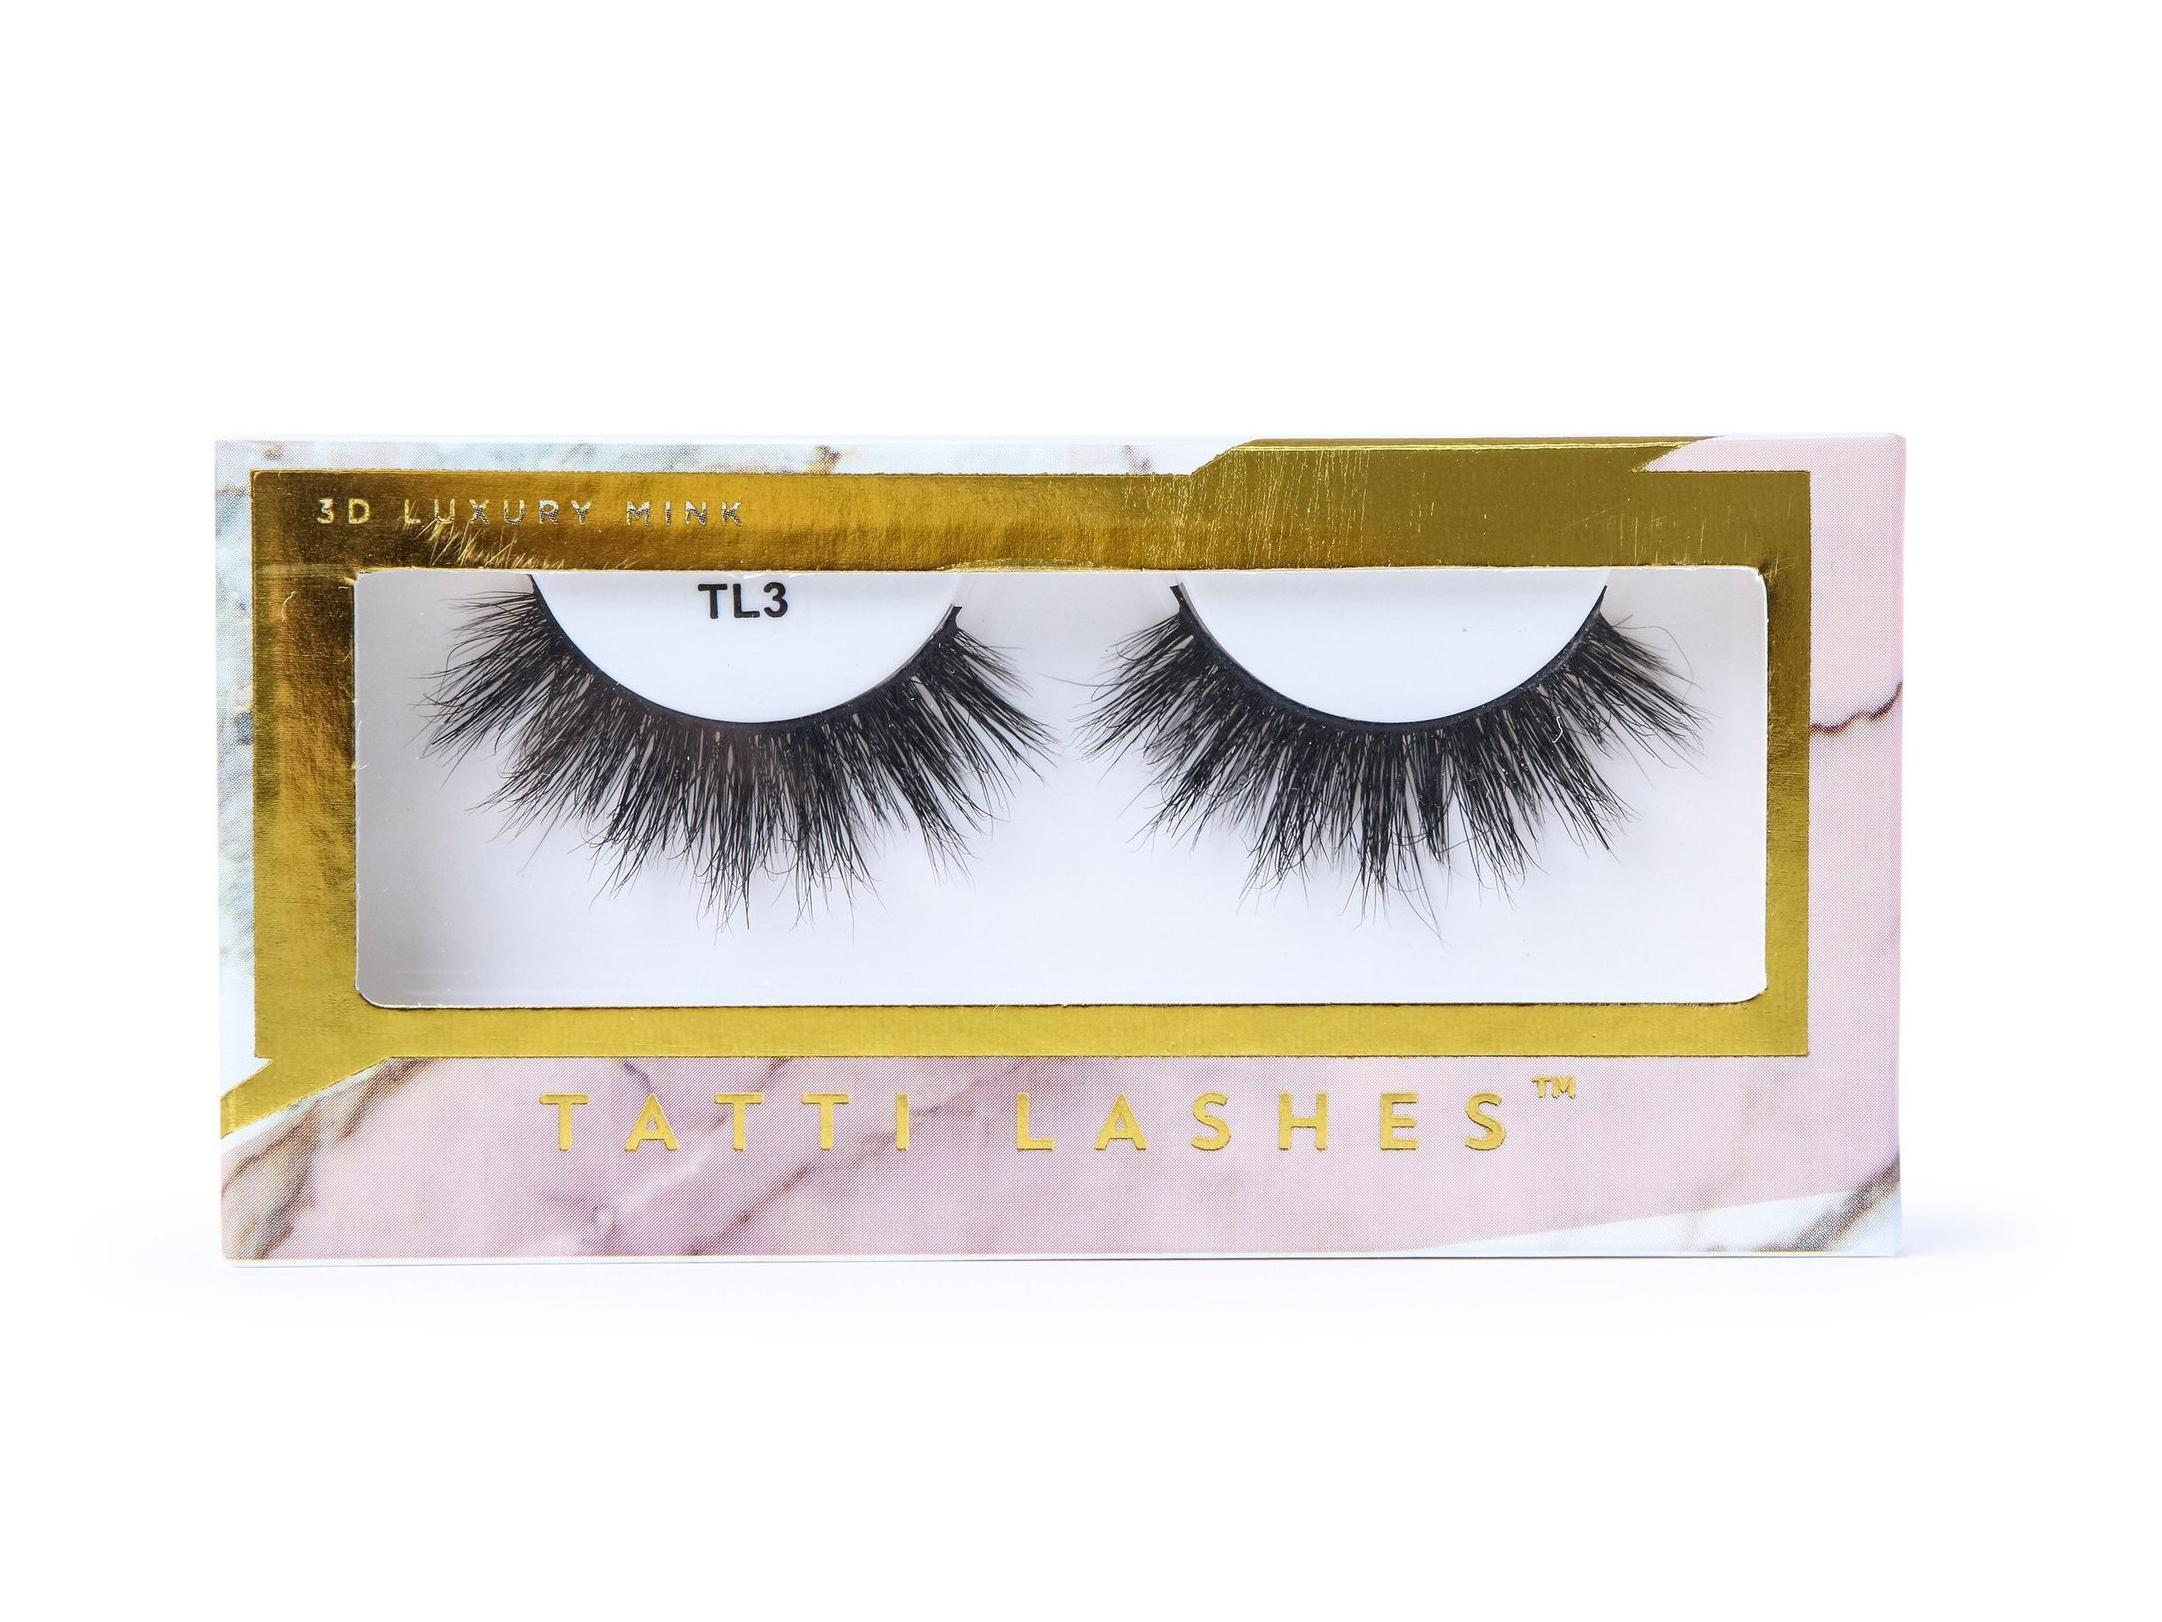 Best false eyelashes: Natural and dramatic falsies that are